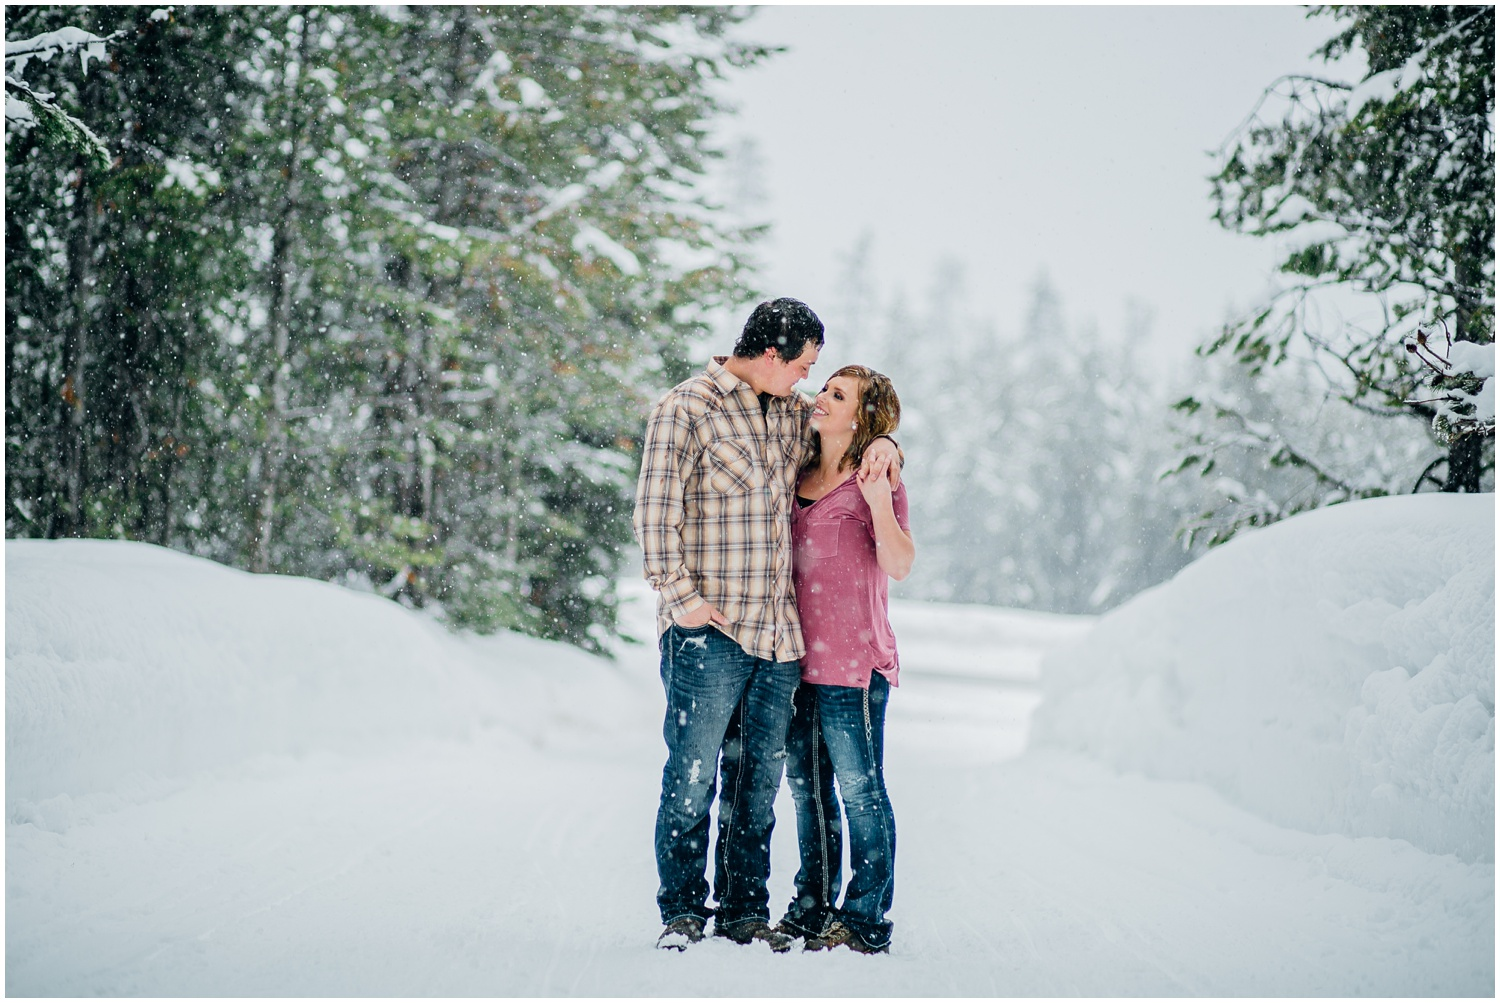 island-park-engagements-idaho-utah-wyoming-colorado-wedding-photographer_0231.jpg